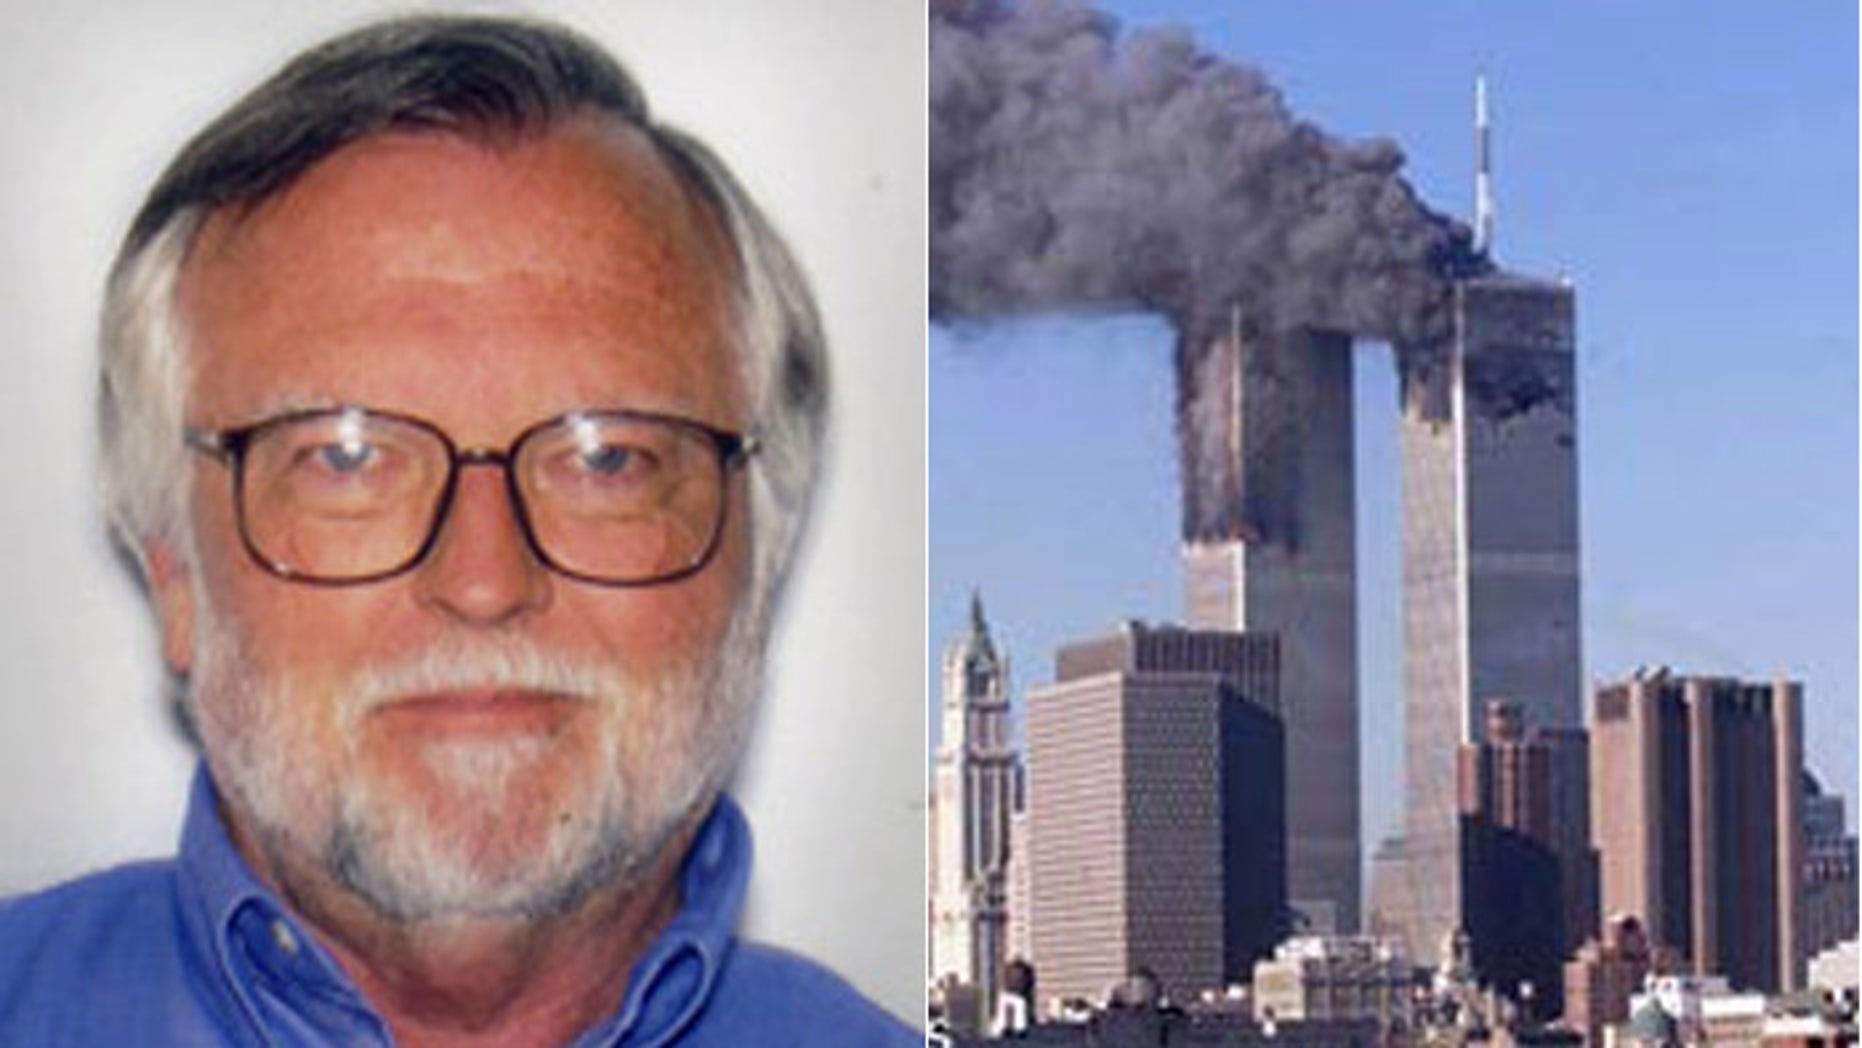 California Polytechnic State University, San Luis Obispo, lecturer Emmit Evans tells students Usama Bin Laden, mastermind of the 9/11 attacks, was trying to free his people from a Saudi regi8me propped up by the U.S.